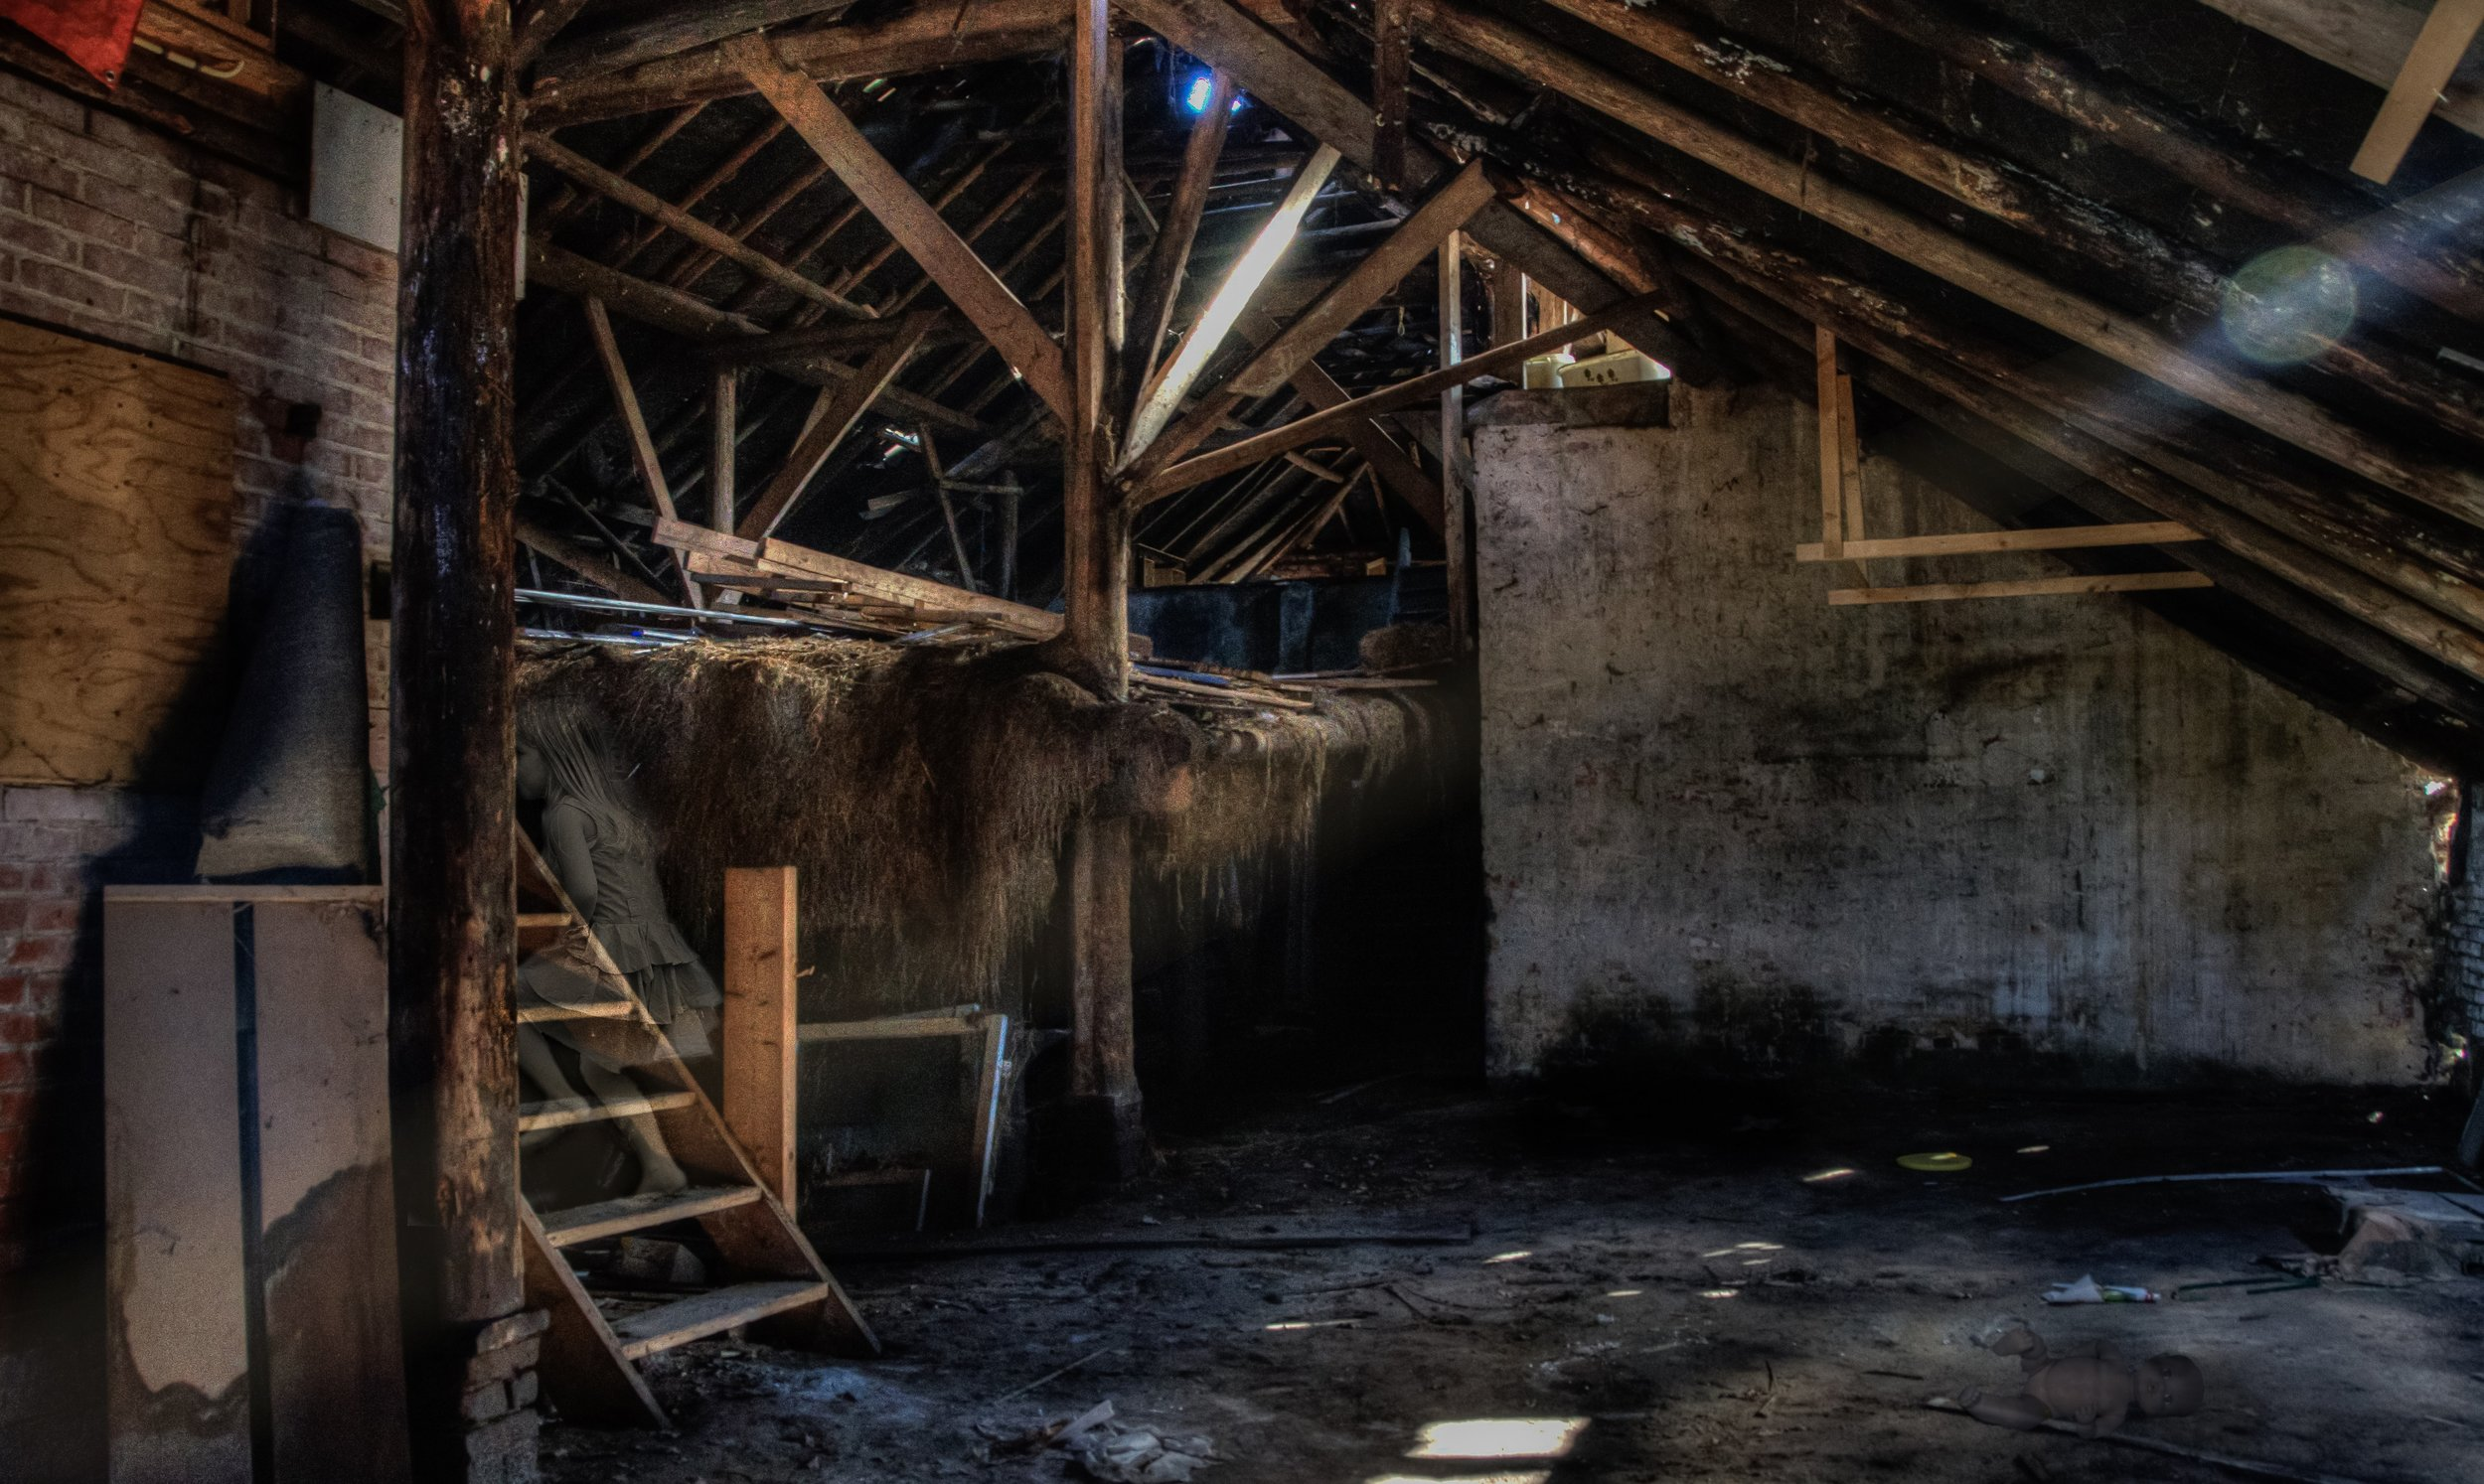 barn-dirty-stairs-55656.jpg